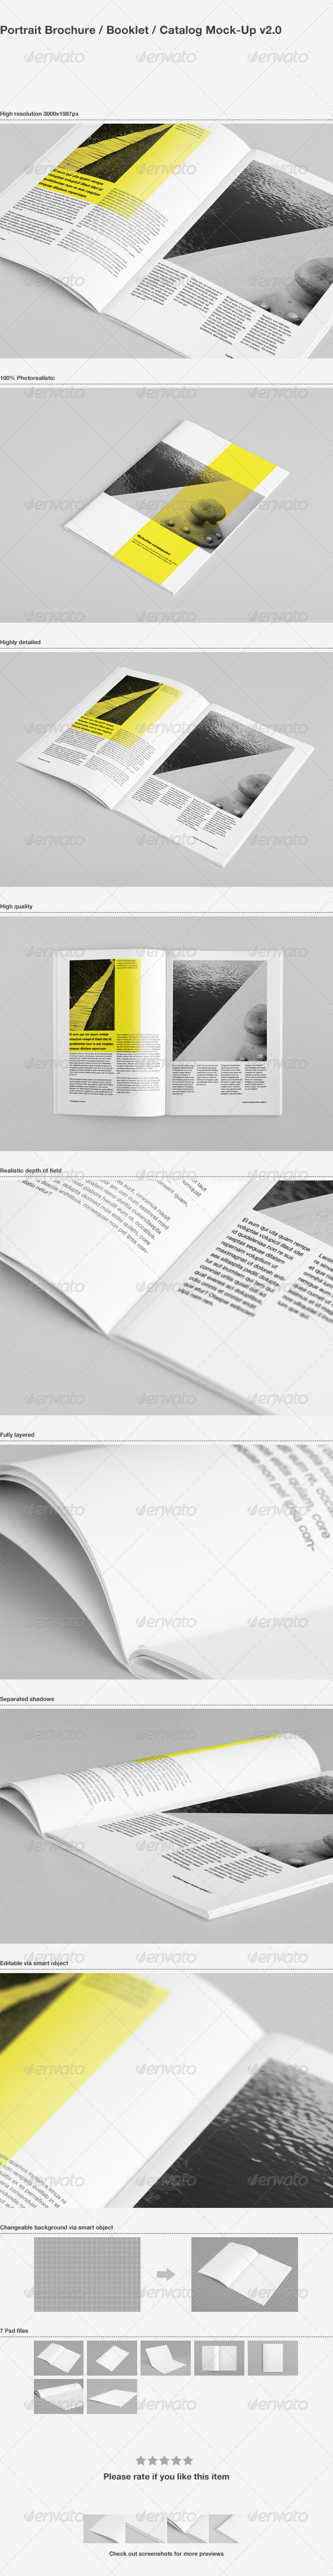 Brochure / Booklet / Catalog Mock-Up - Brochures Print